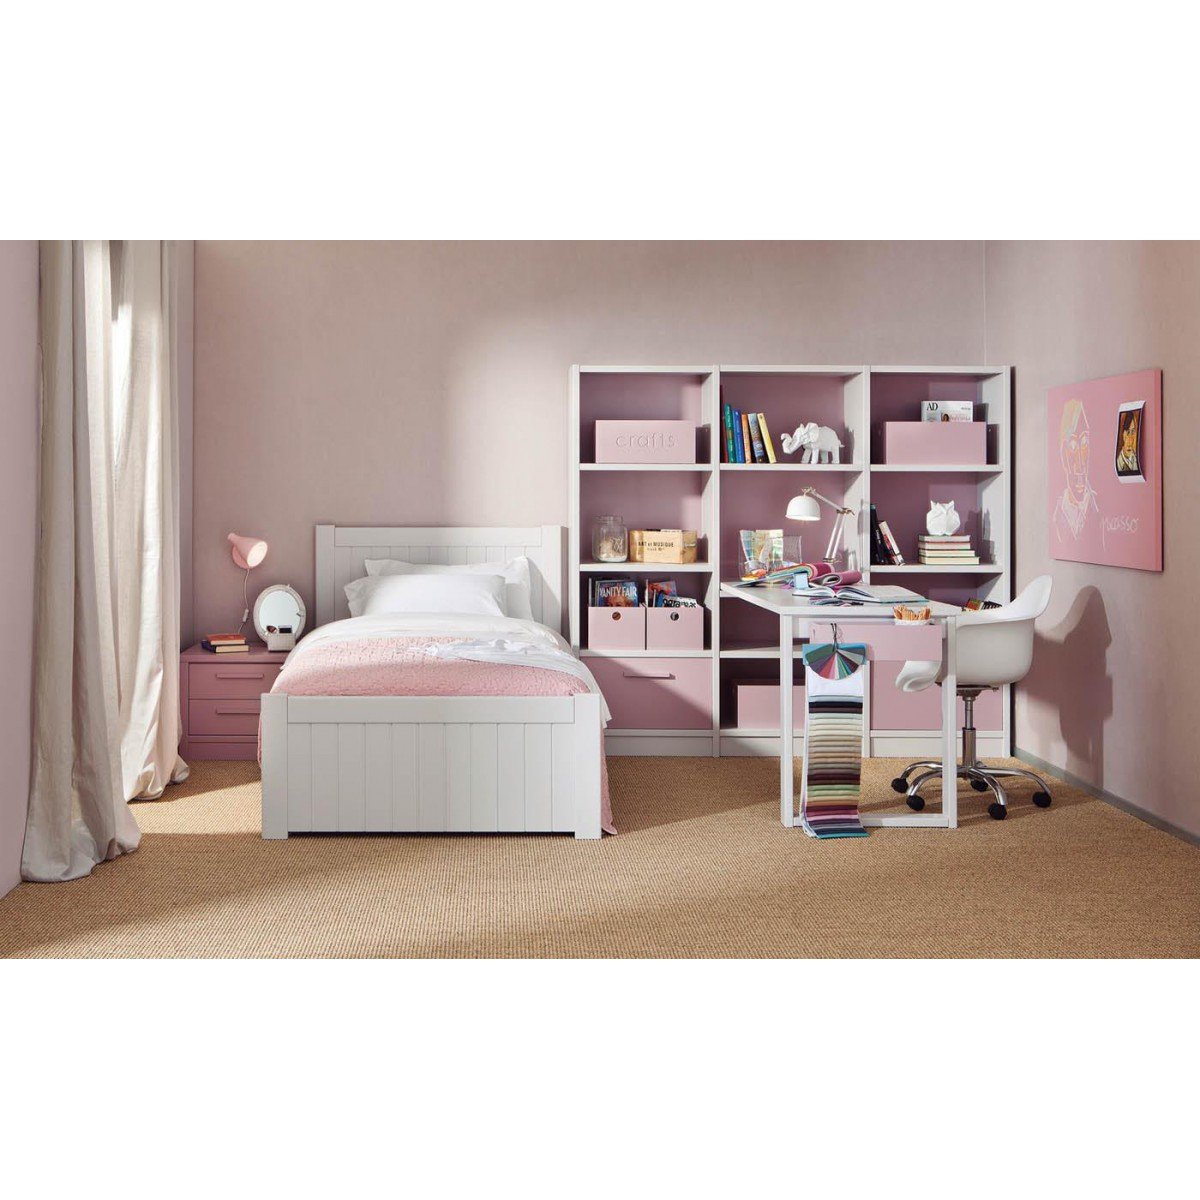 chambre premier ge pour enfants de haute qualit sign e. Black Bedroom Furniture Sets. Home Design Ideas